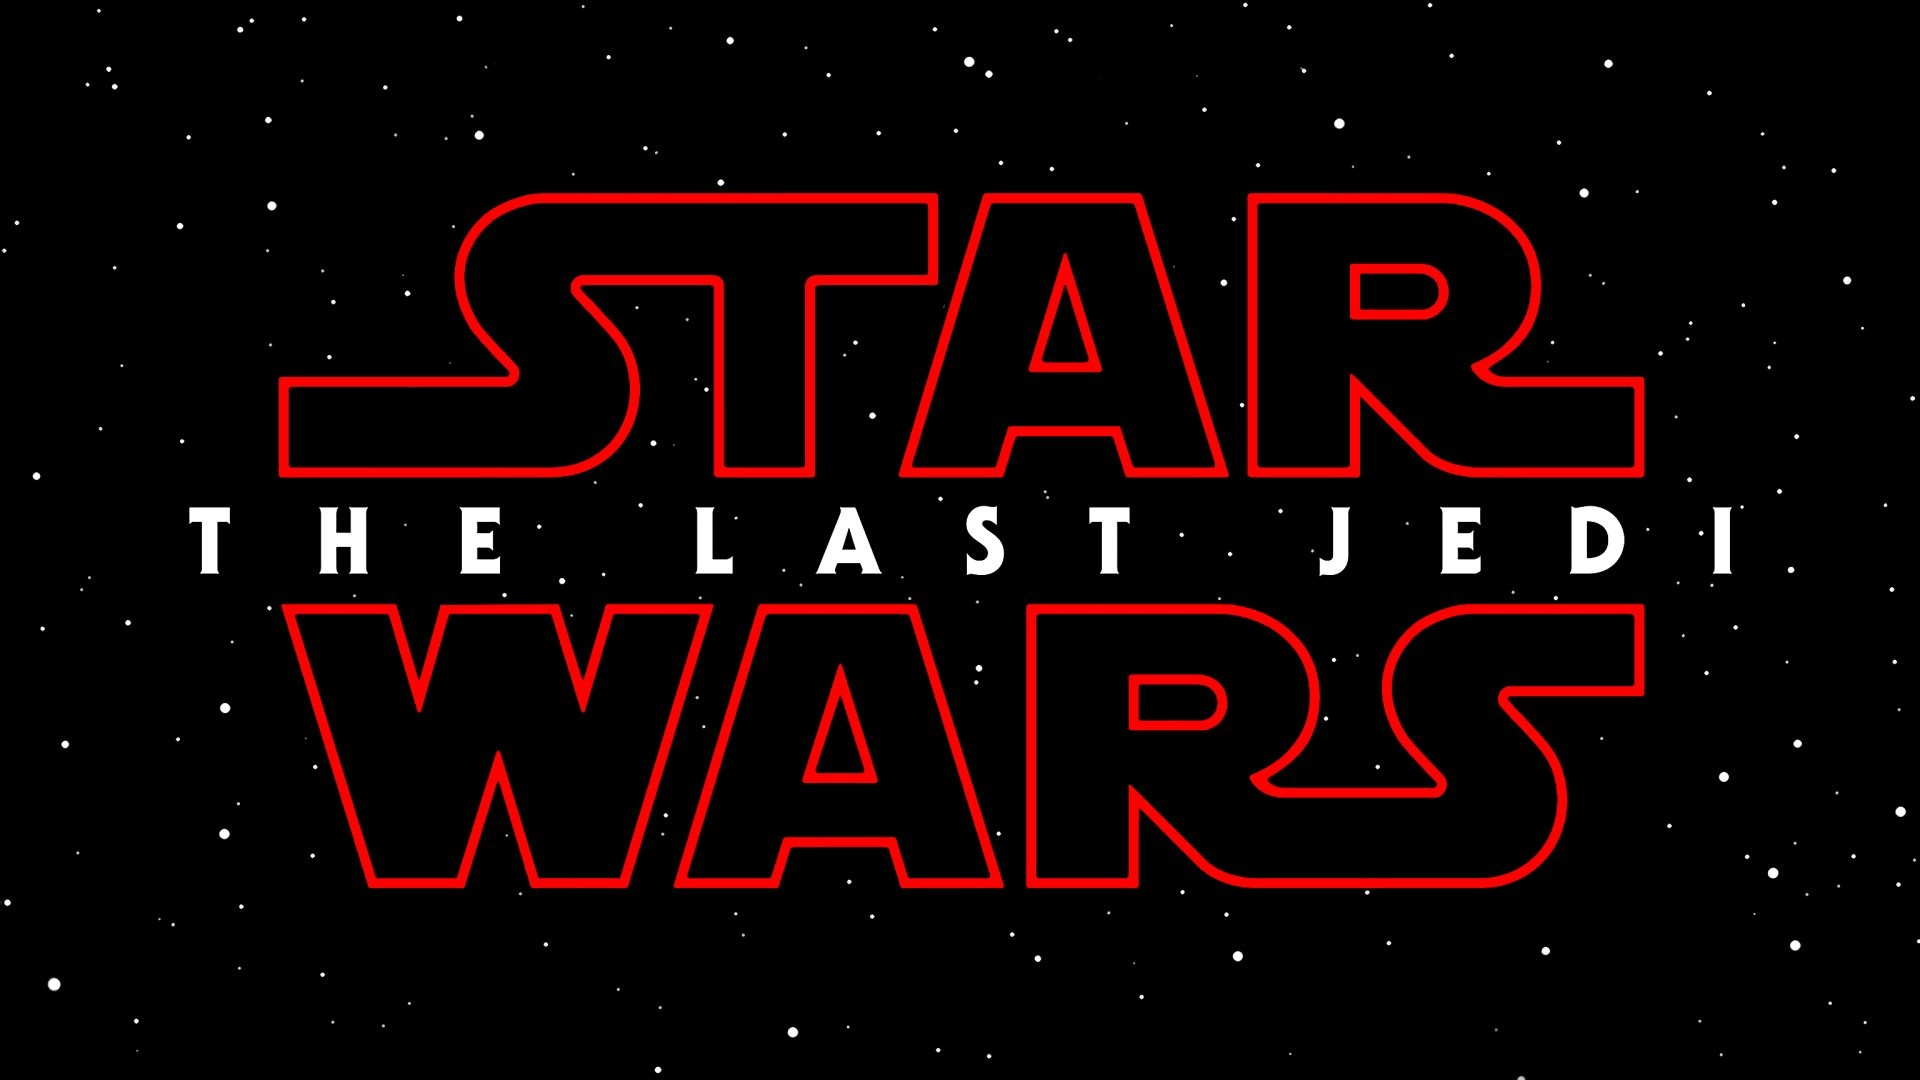 1920x1080 Movie - Star Wars Episode VIII: The Last Jedi Logo Wallpaper